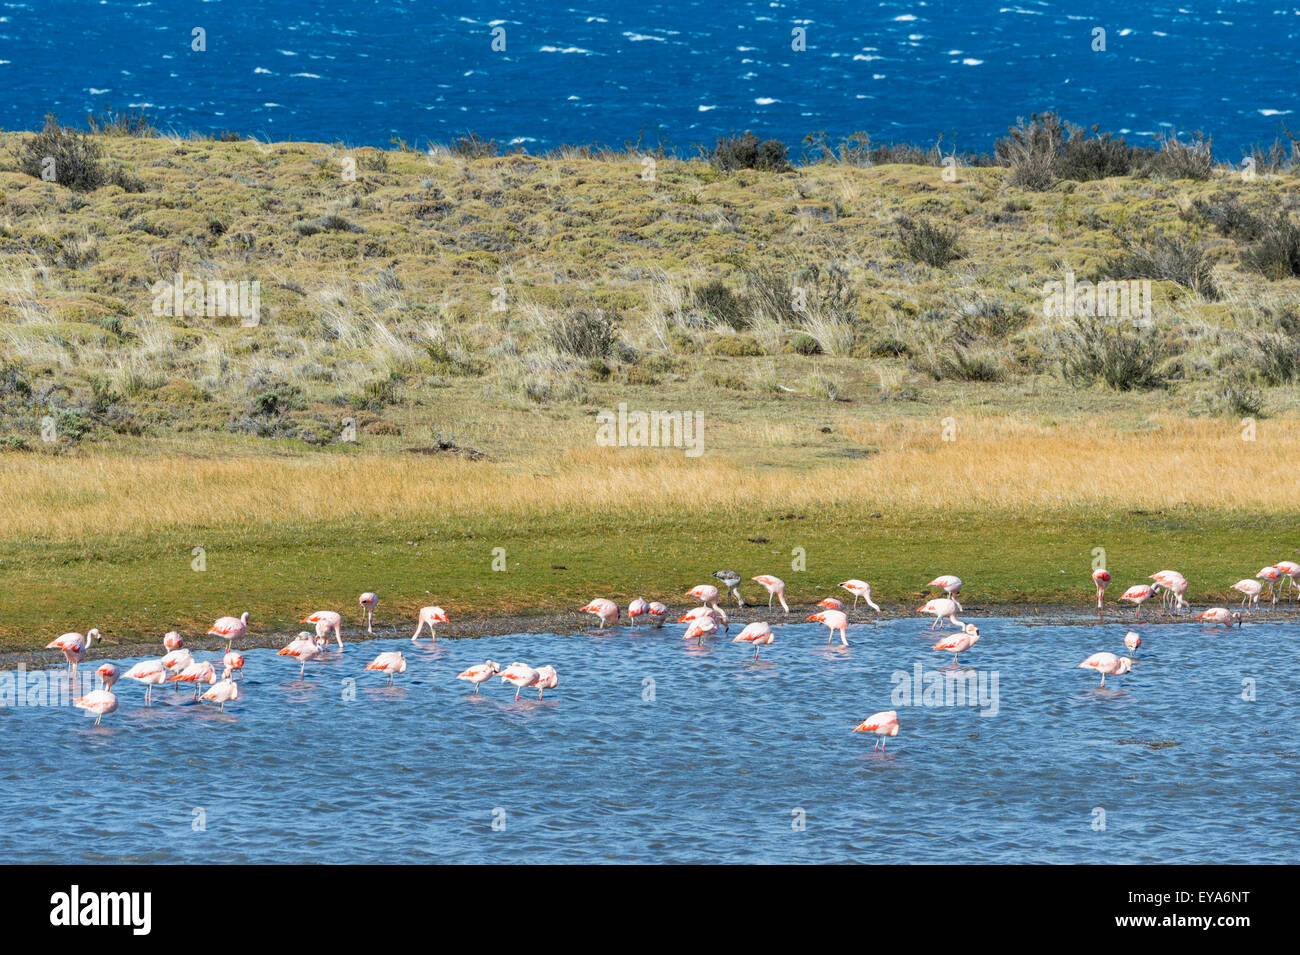 Chilean flamingos (Phoenicopterus chilensis), Torres del Paine National Park, Chilean Patagonia, Chile - Stock Image